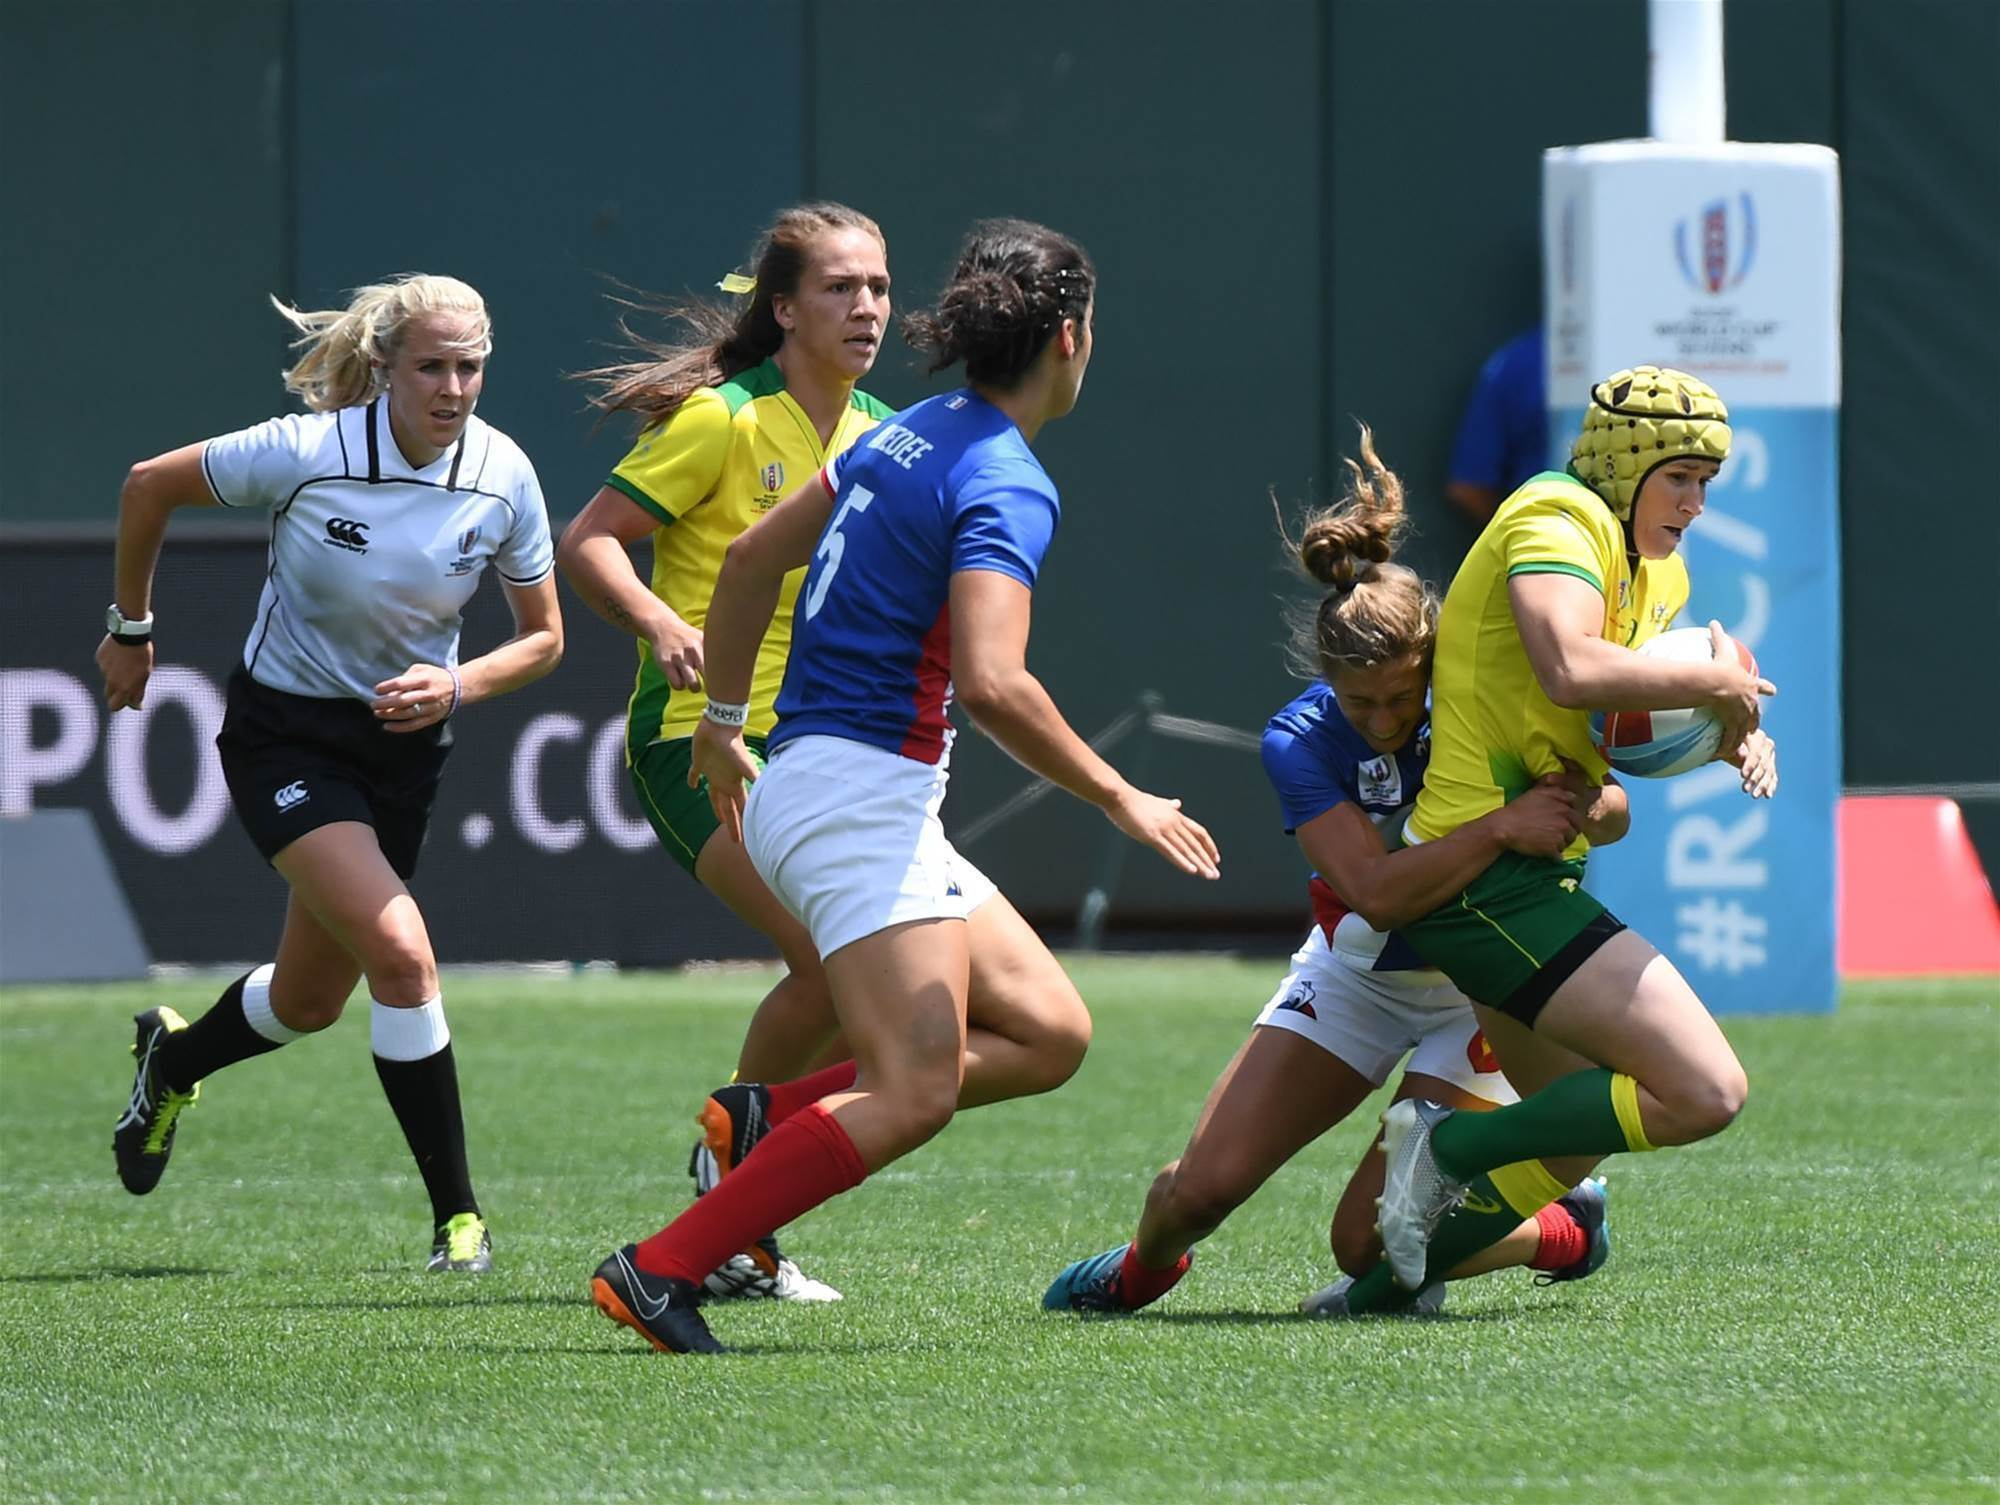 Rugby 7s World Cup Wrap: Semi-finals and play-offs